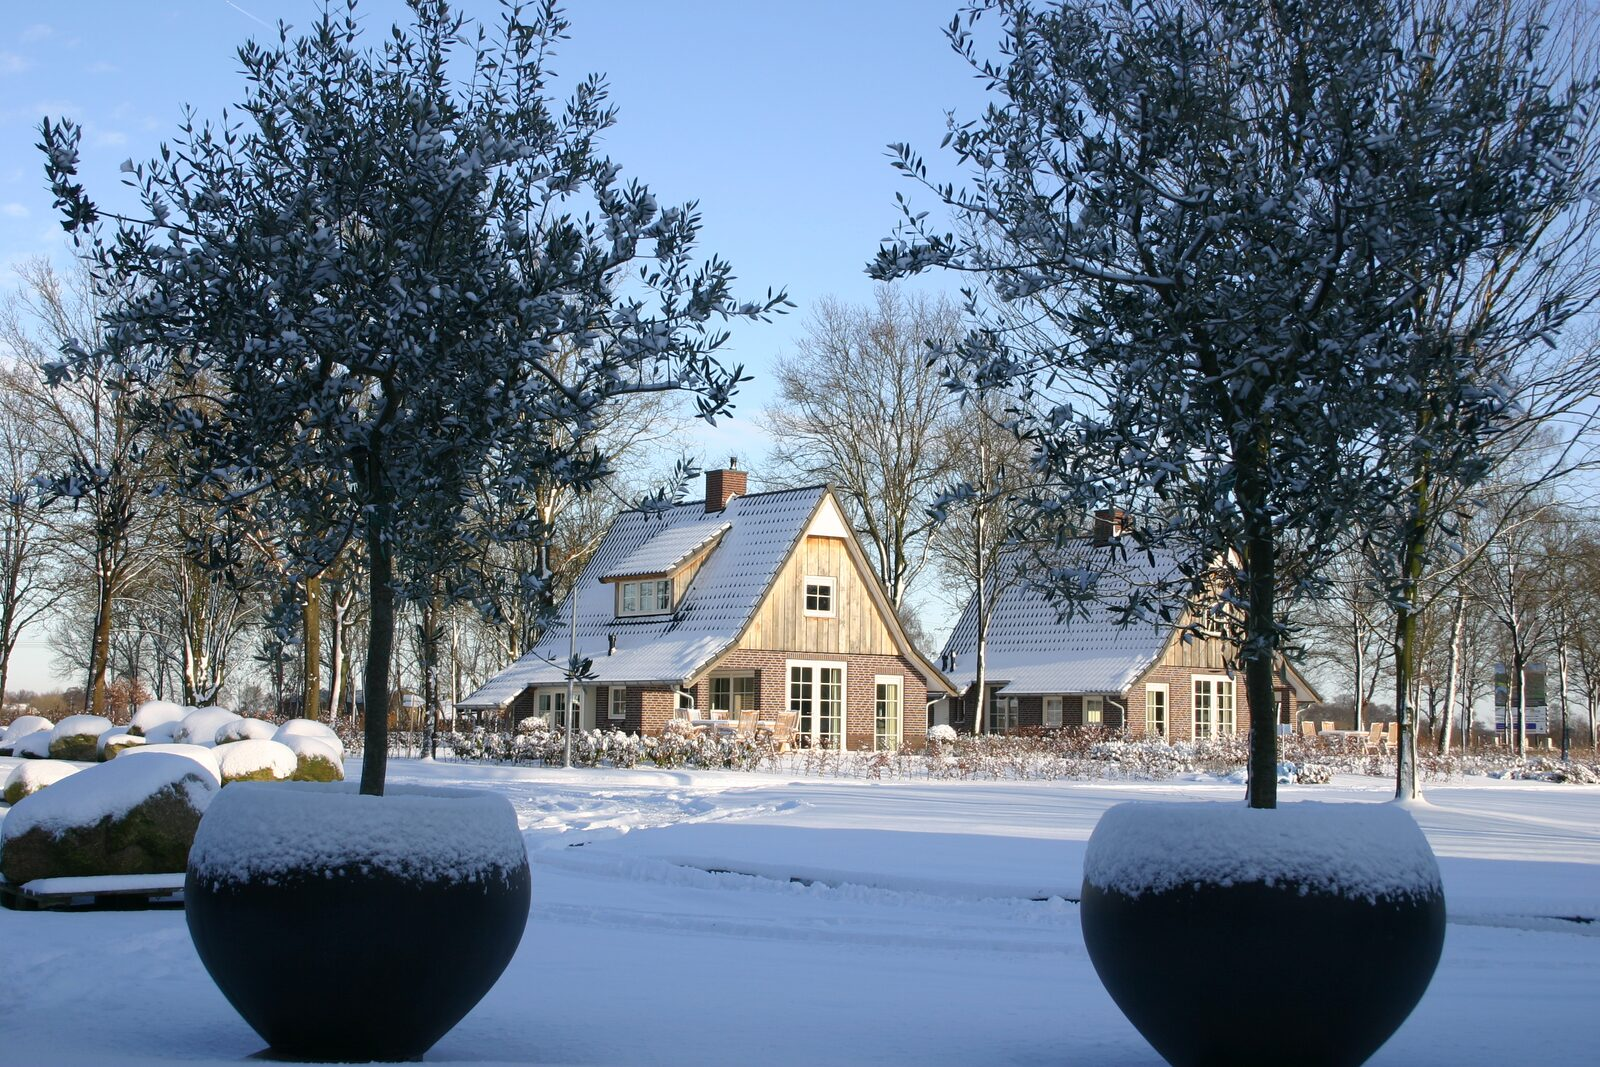 Rent a home New Year's Eve The Netherlands